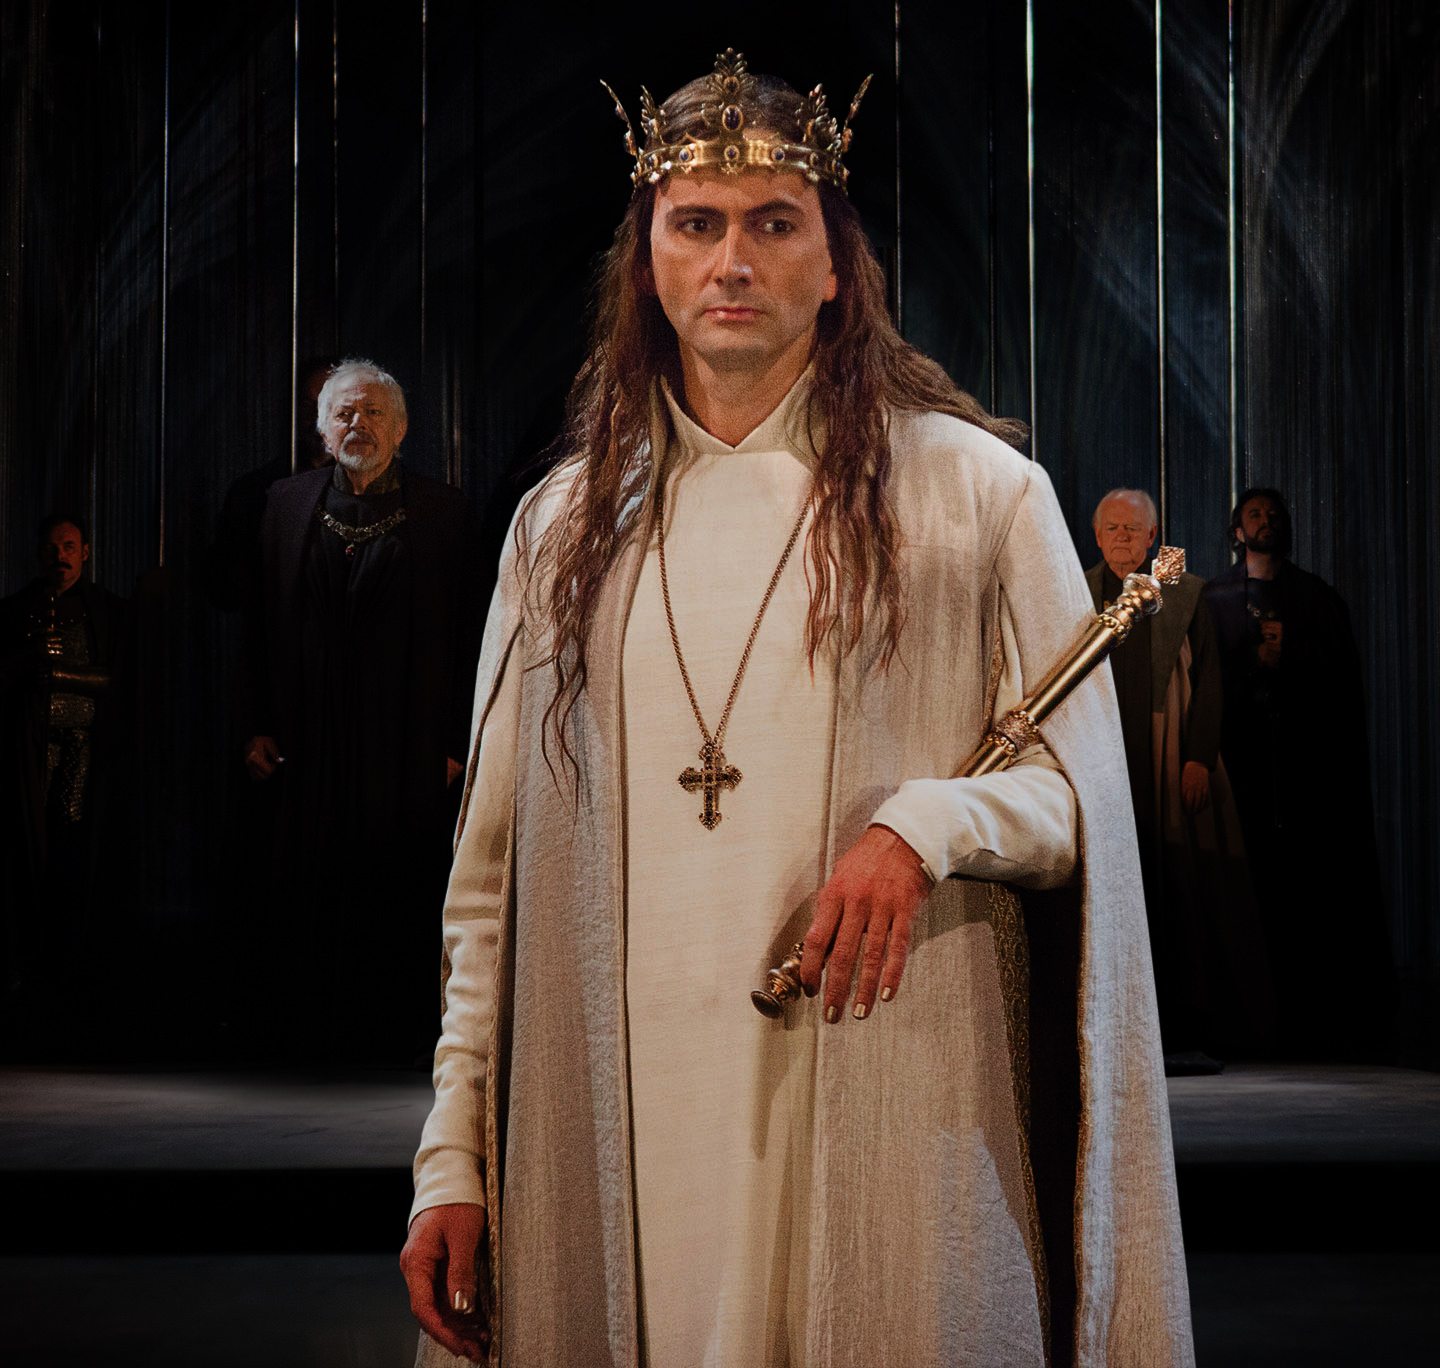 David Tennant on stage in white royal gown and crown.